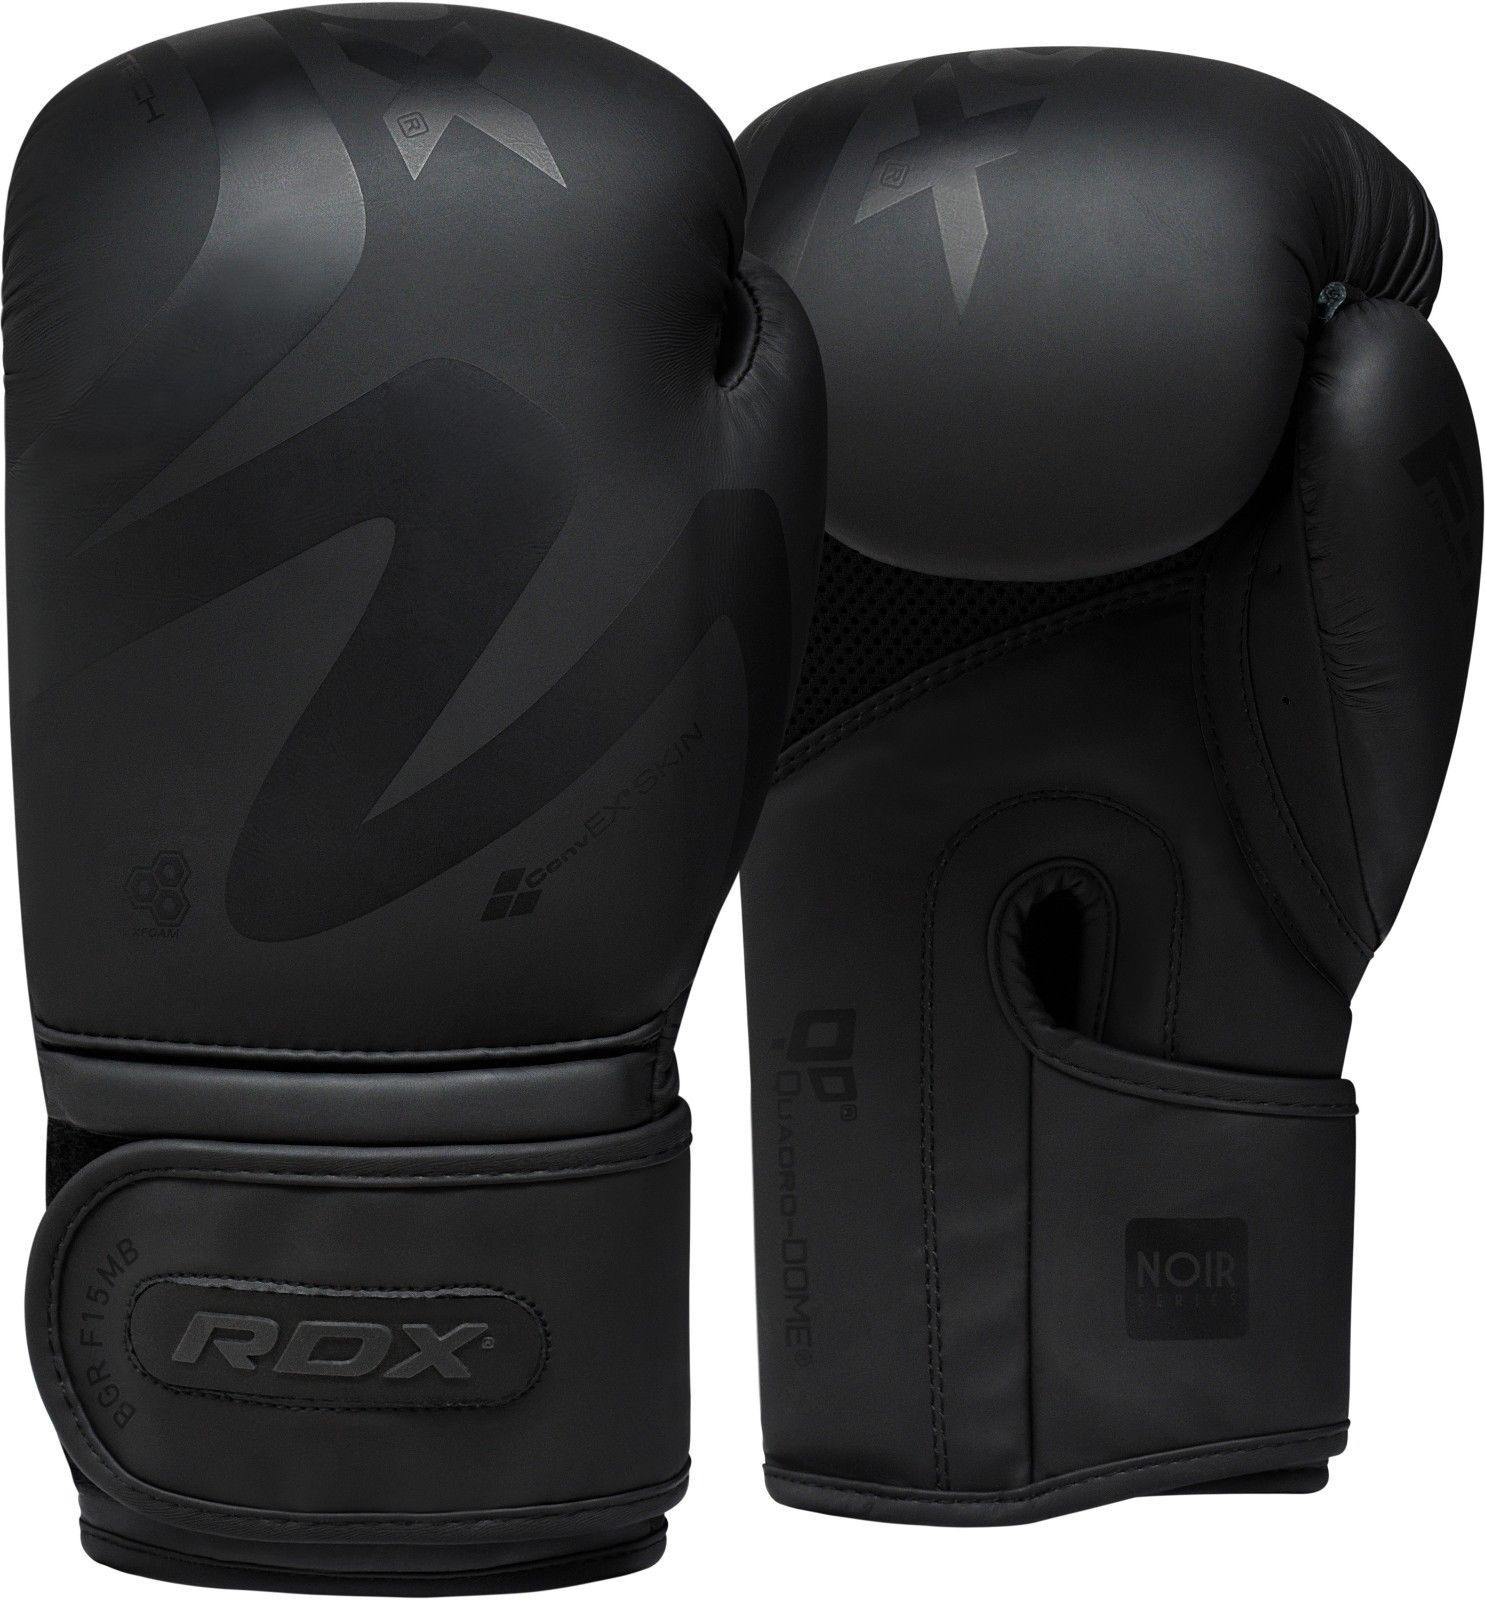 RDX Boxhandschuhe Leder Training MMA Training Leder Boxen Muay Thai Boxing Gloves Kampfsport DE 615b7e